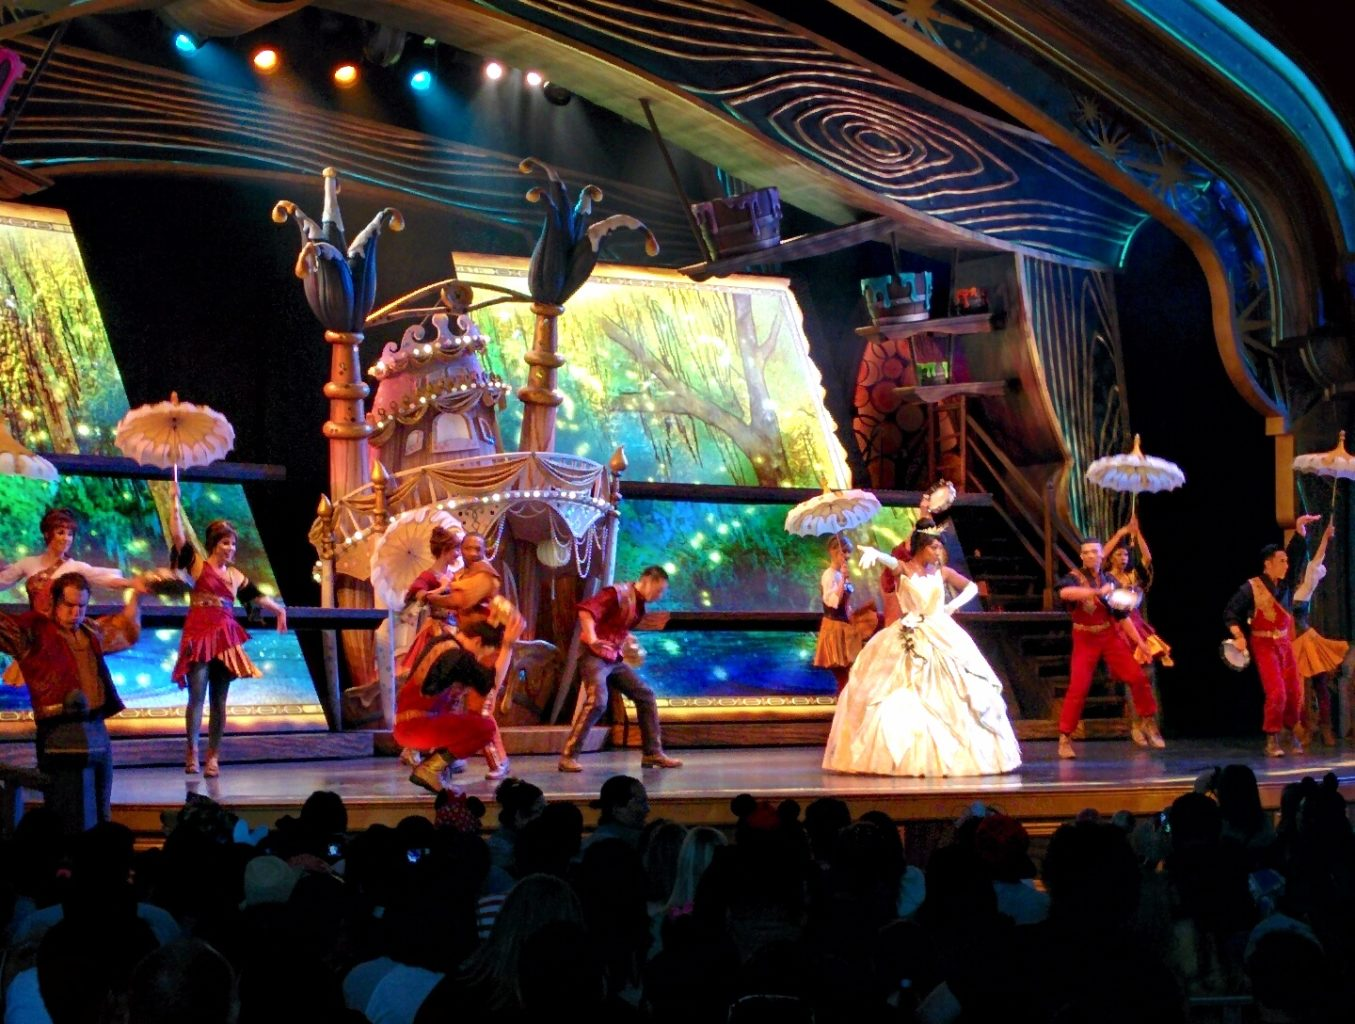 Disneyland Mickey and the Magical Map show - TravelingMom